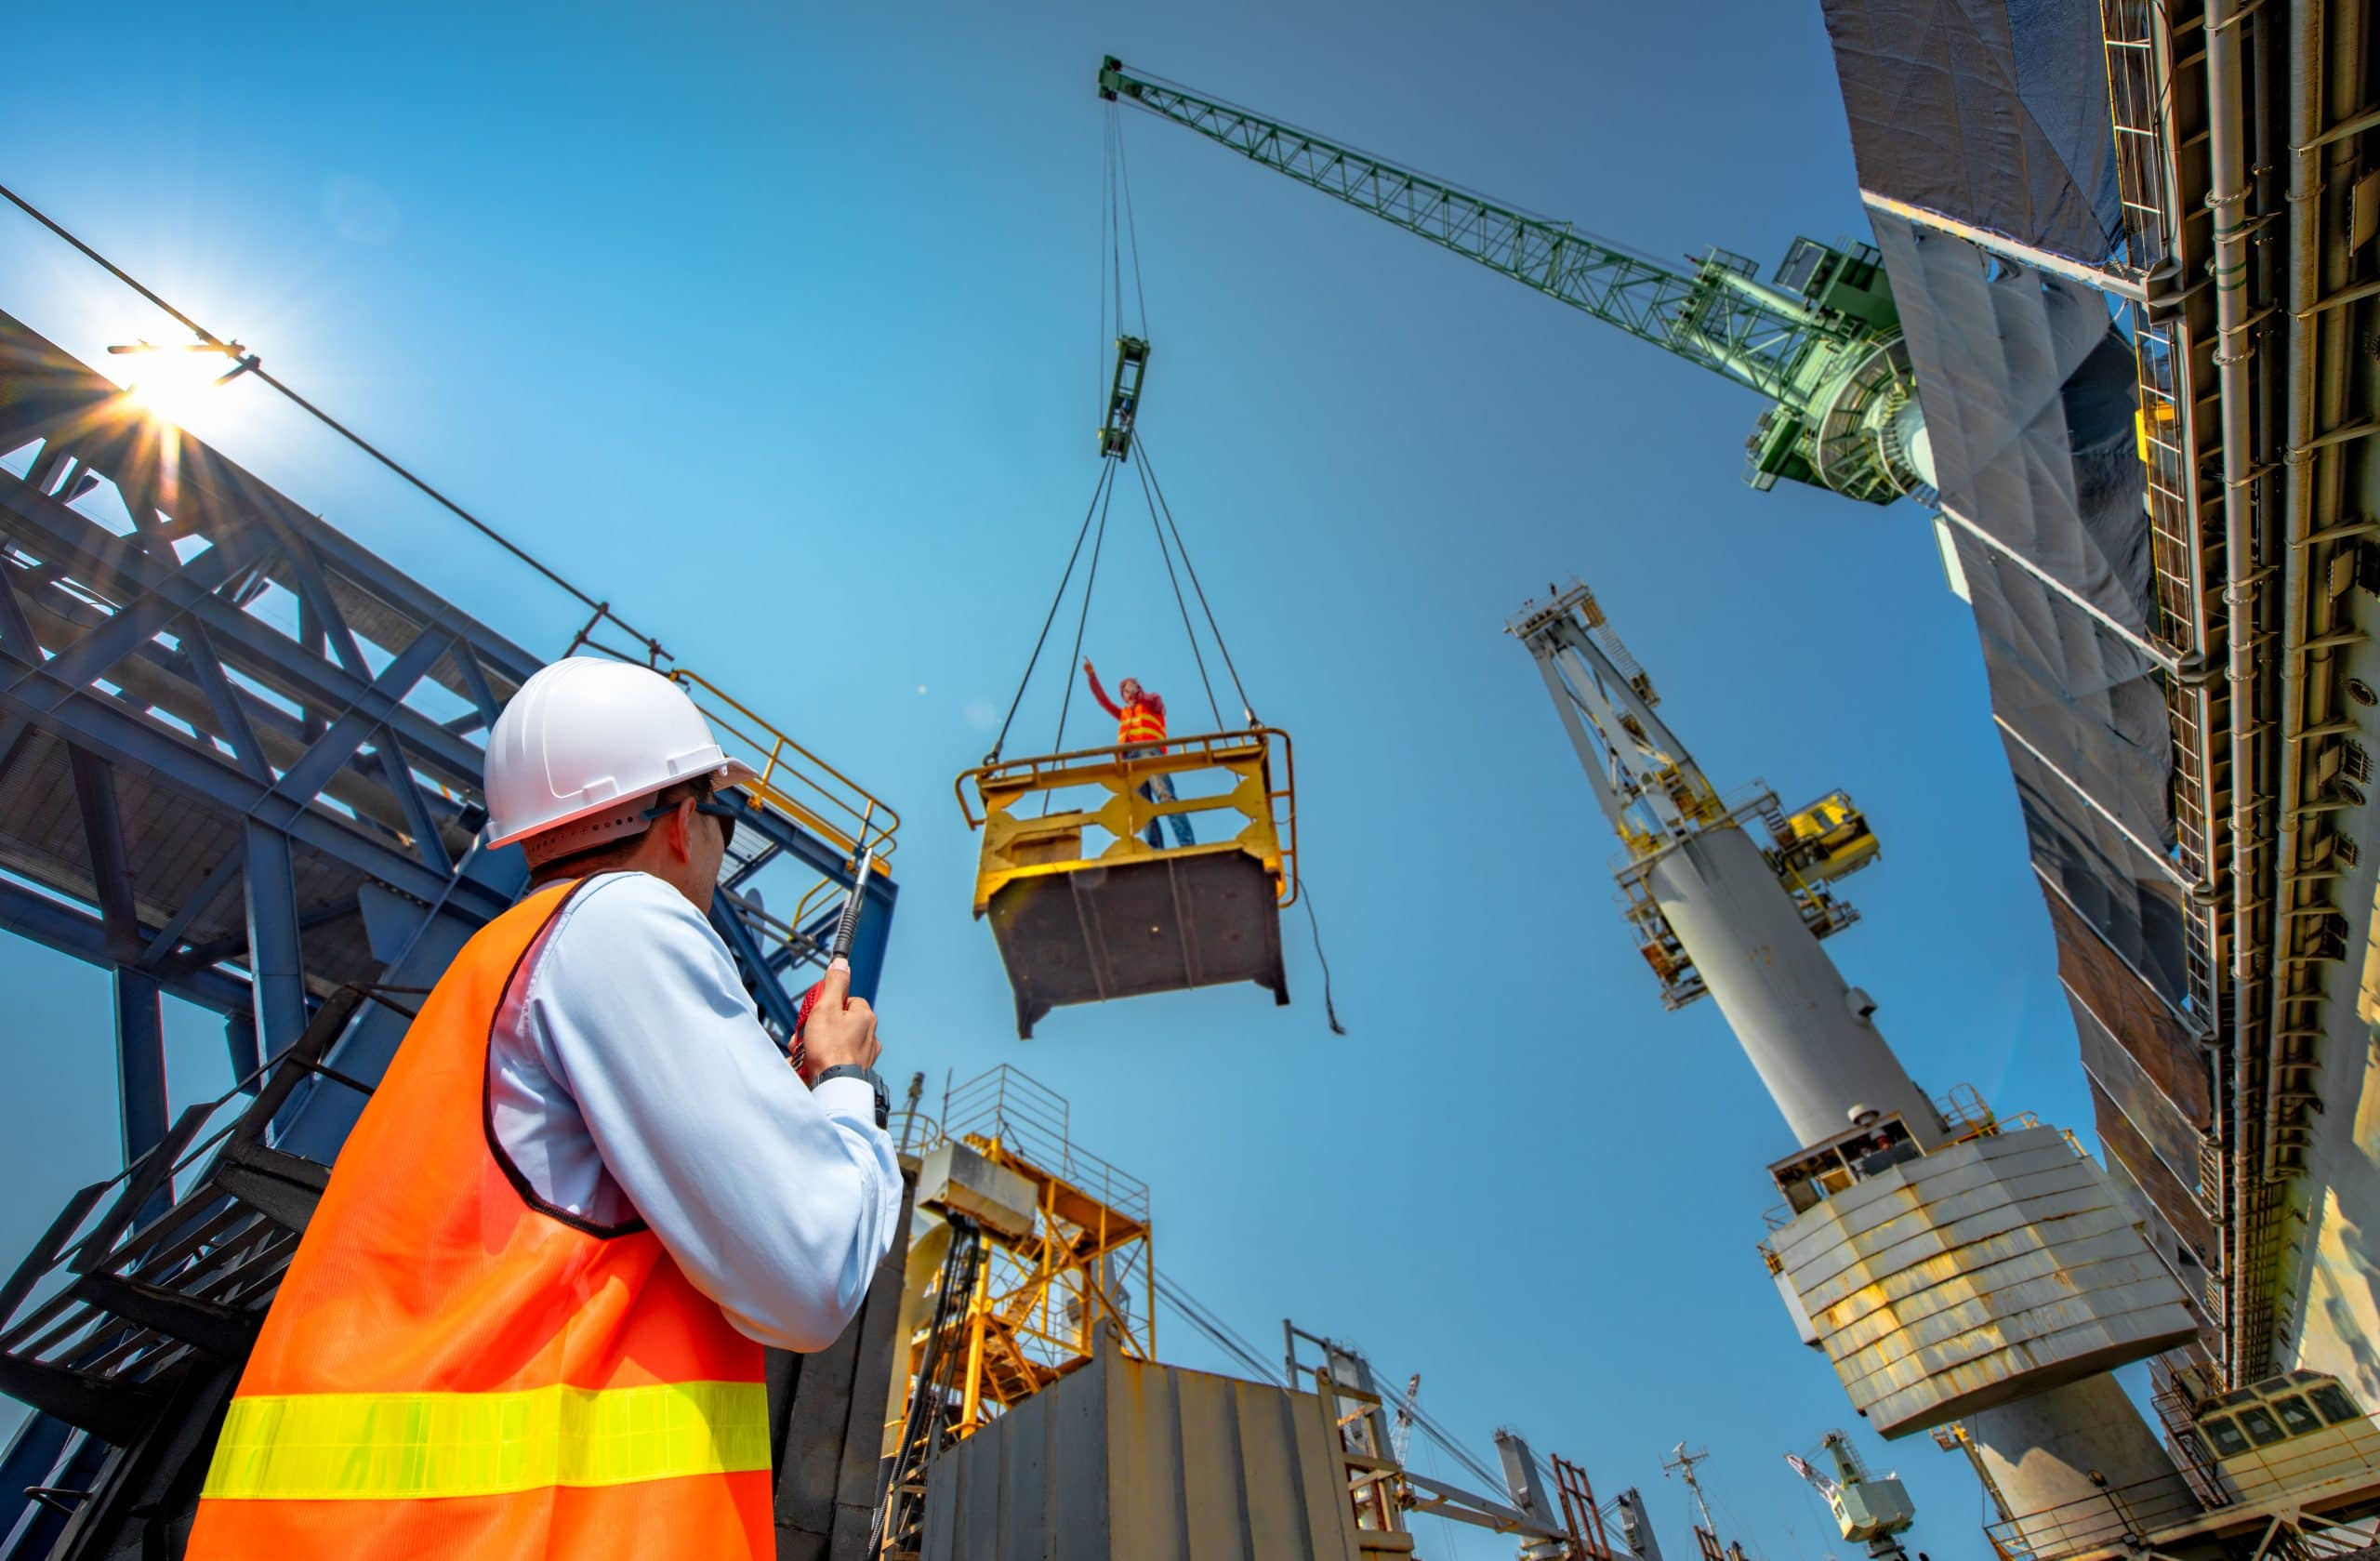 Construction project supervisor watching works on crane lifts